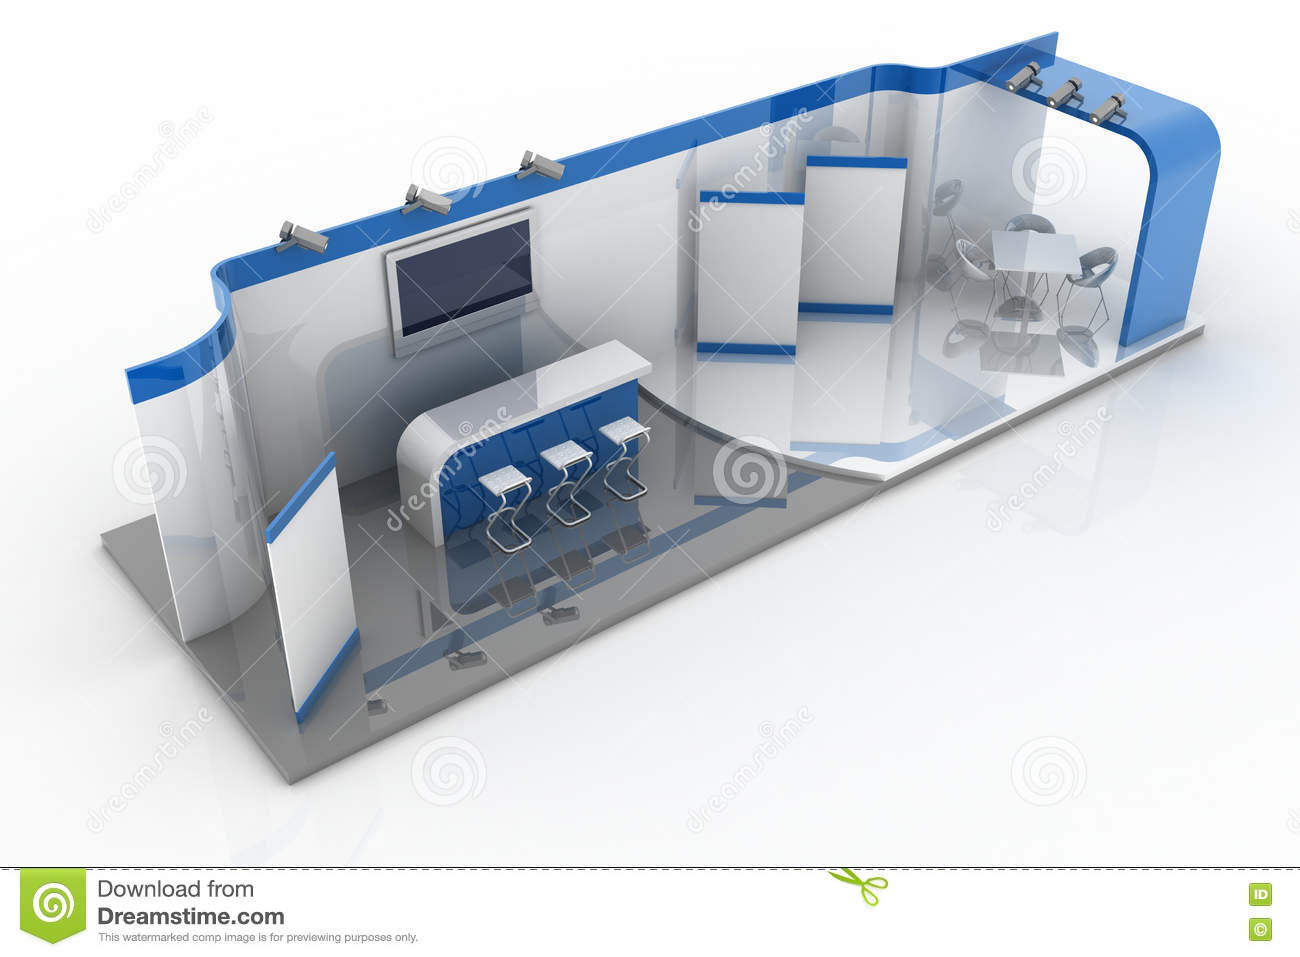 Exhibition Booth Animation : Exhibition stall d model mtr sides open diagast booth d